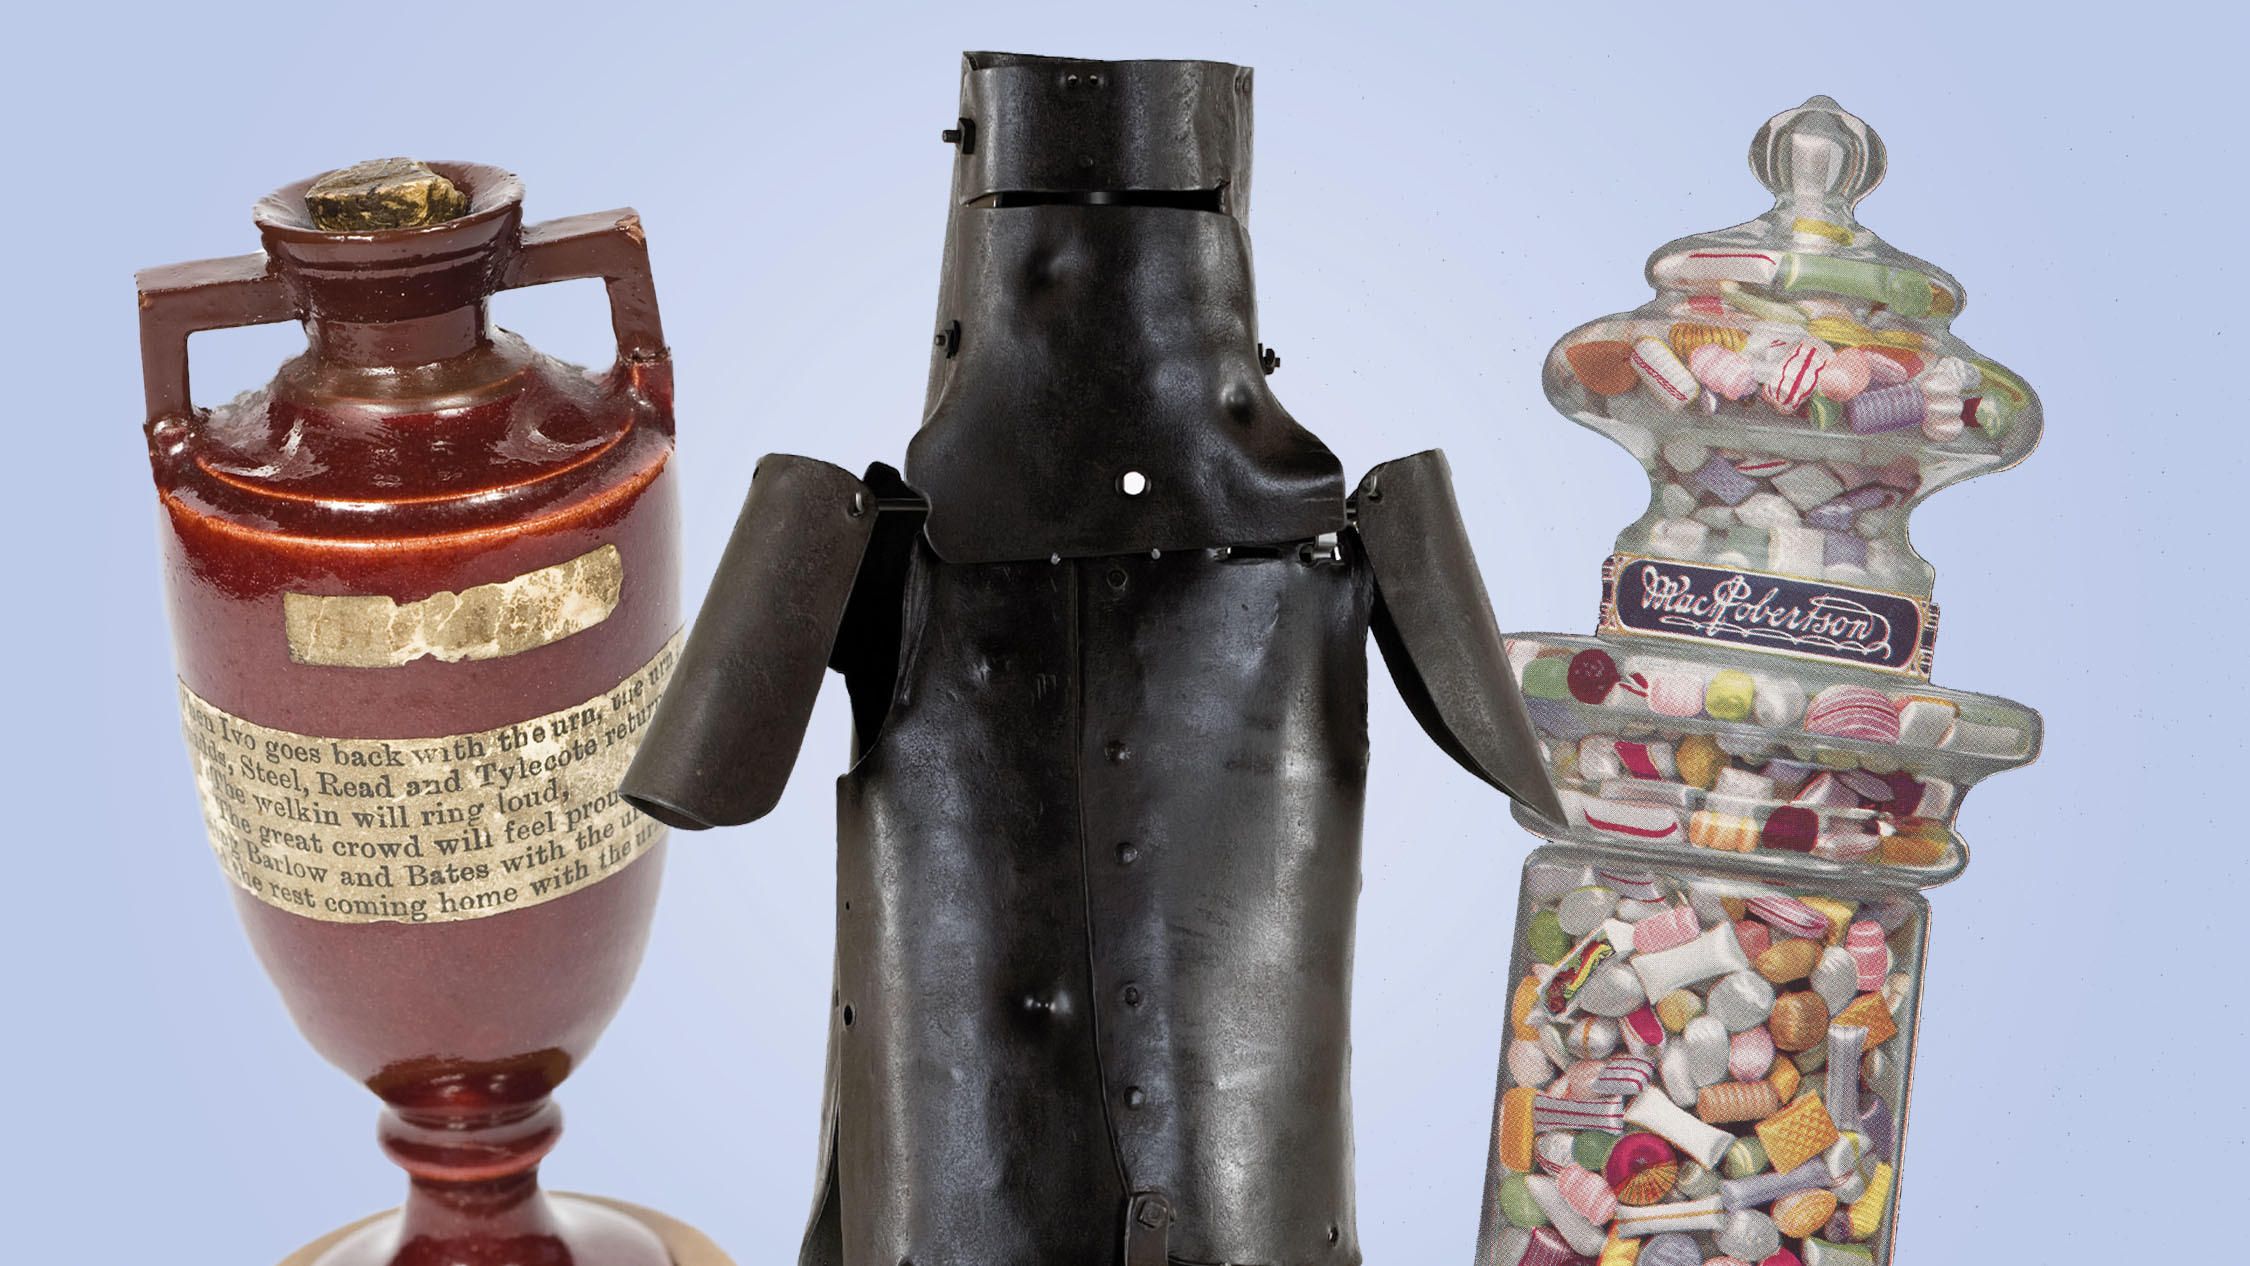 Ashes, Ned Kelly's Armour and MacRobinson's sweets